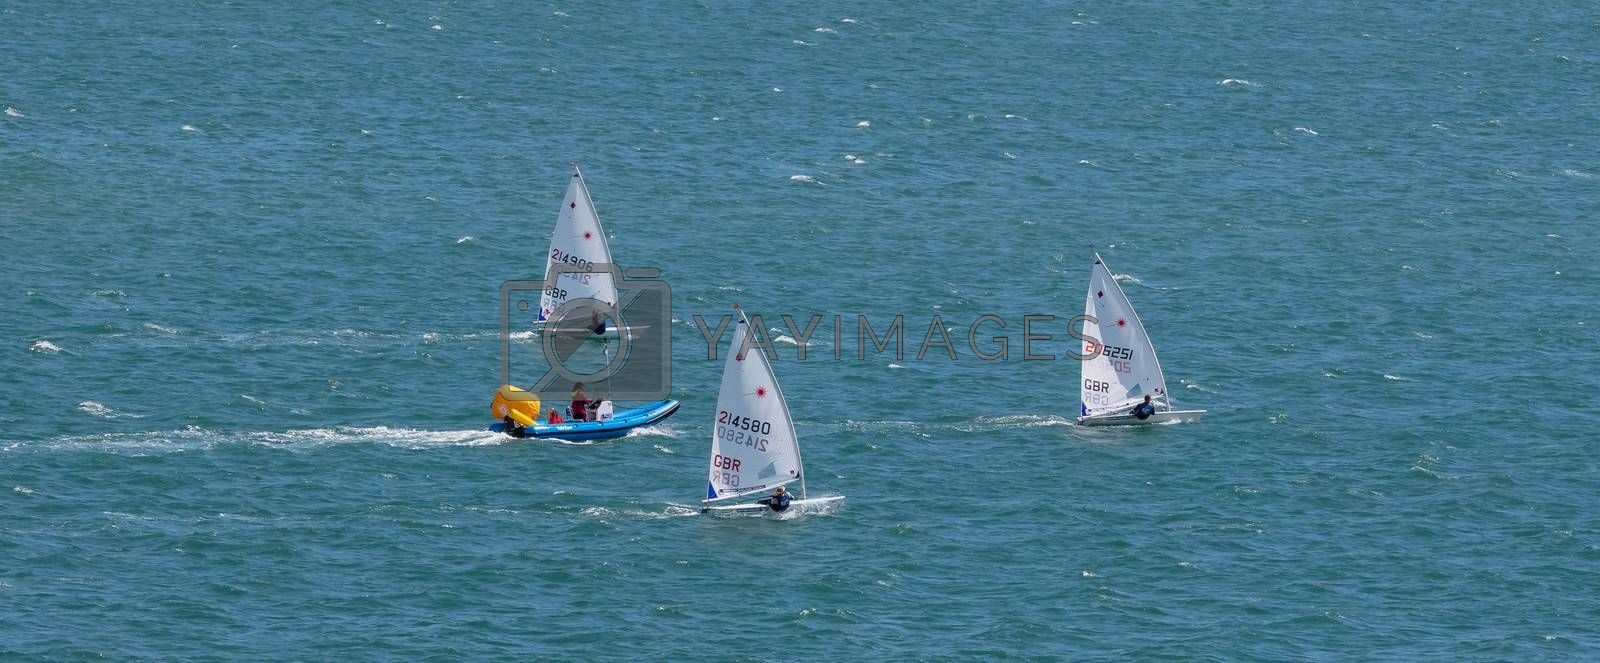 Portland harbour, United Kingdom - July 2, 2020: High Angle aerial panoramic shot of the laser class sailing racing dinghies and a rescue boat in Portland harbour.